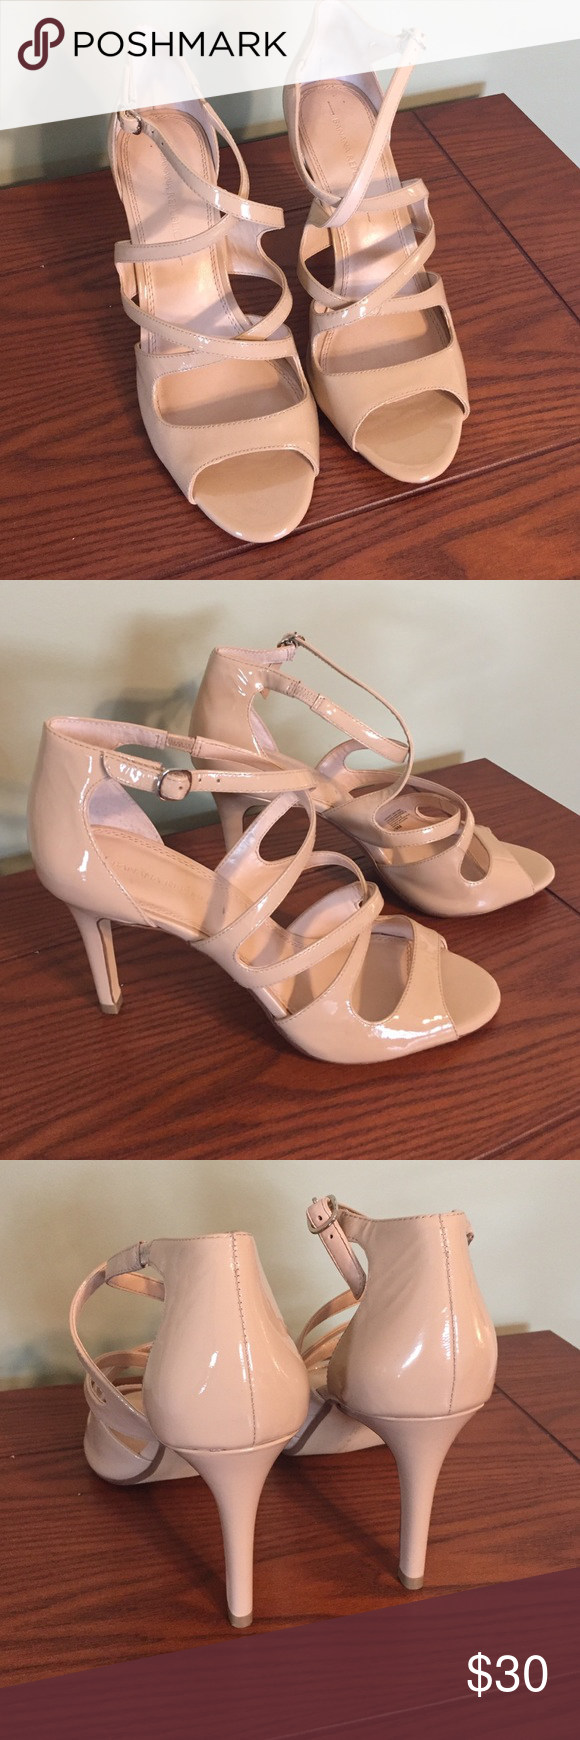 New Banana Republic nude patent leather heels Brand new Patent leather heels from Banana Republic . 3 1/2 inch heels. Gorgeous crossover straps. Size 9. Banana Republic Shoes Heels